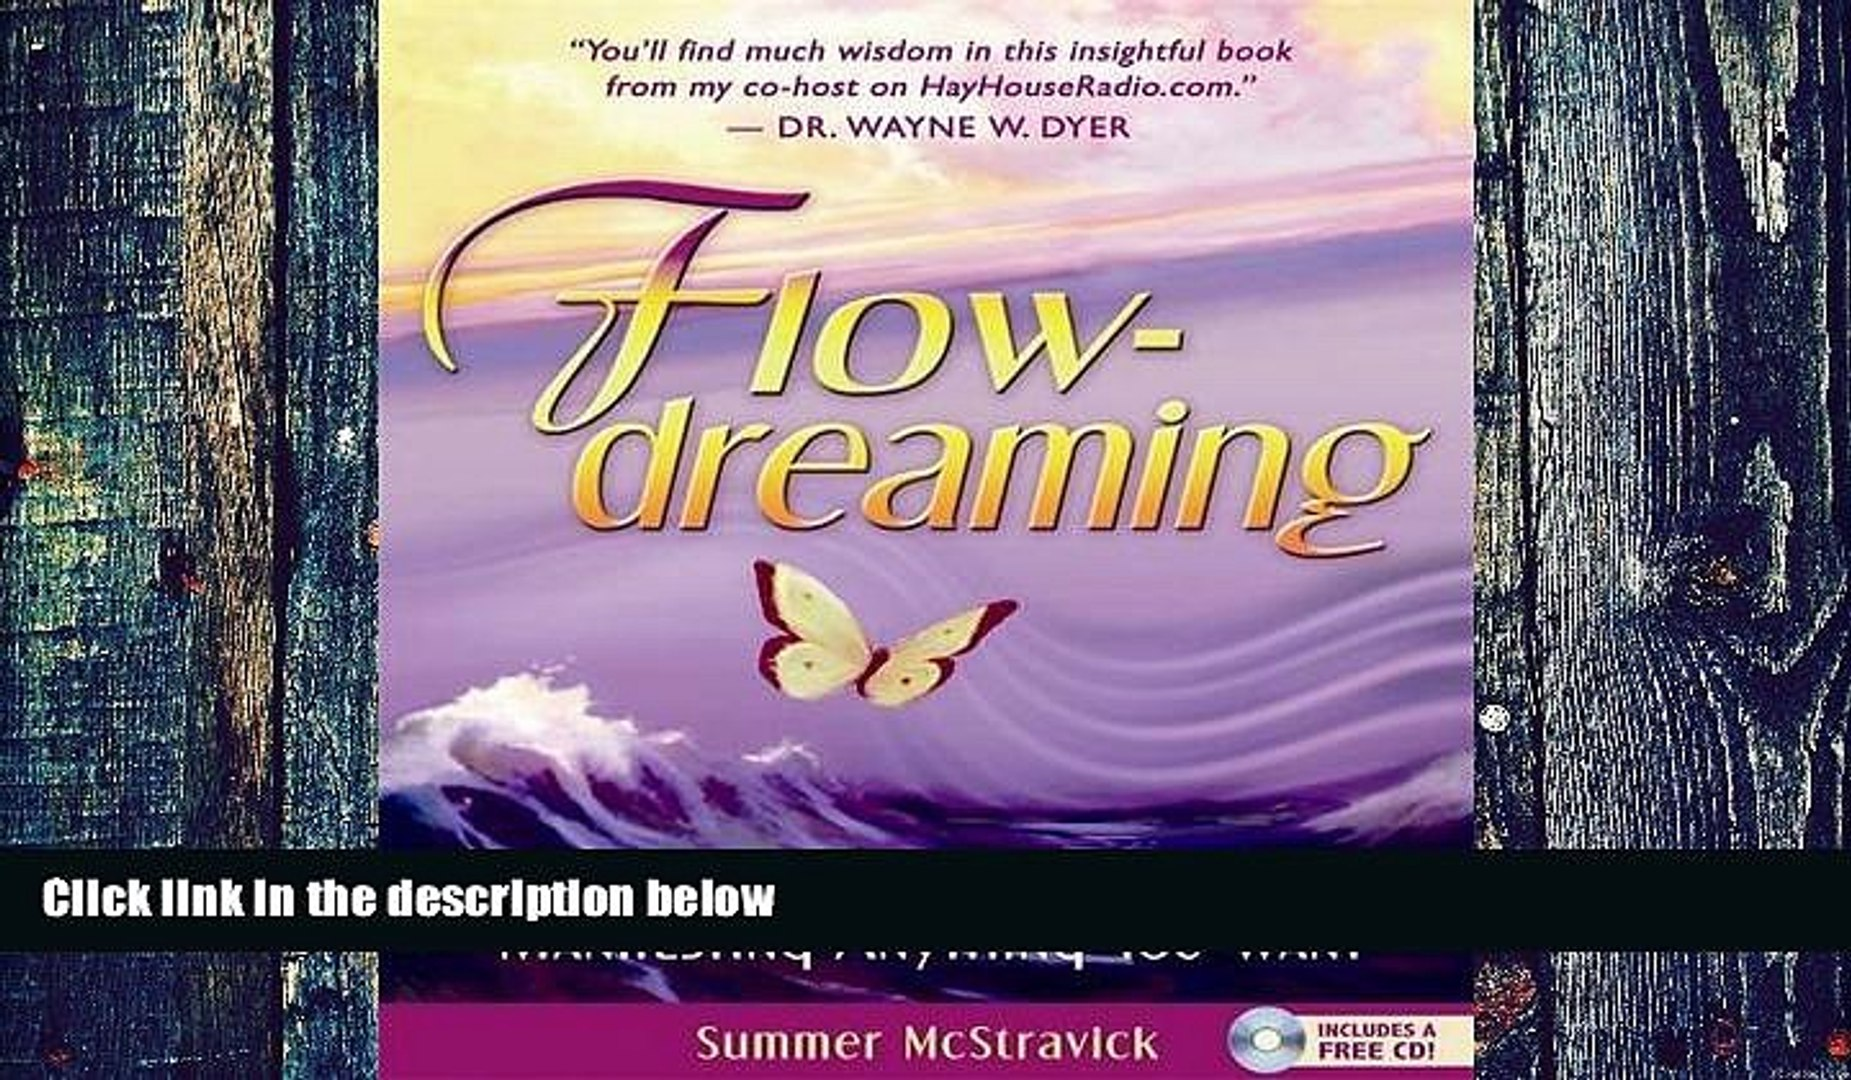 Manifesting Your Dreams in the Life Youve Already Got Creative Flowdreaming